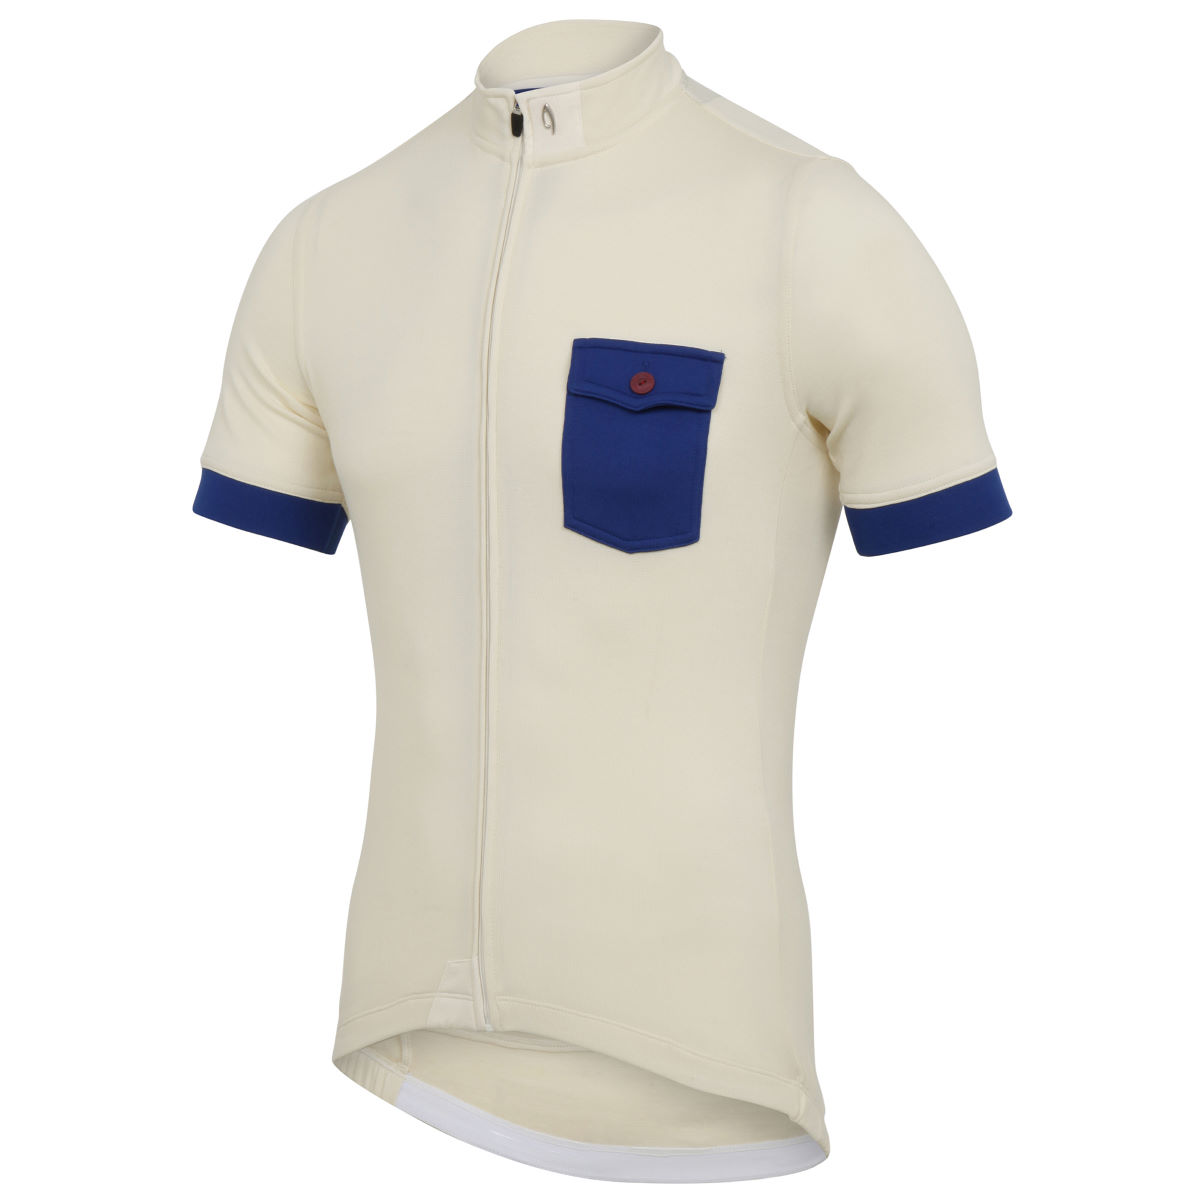 Maillot Isadore Messenger (manches courtes) - X Small Antique White